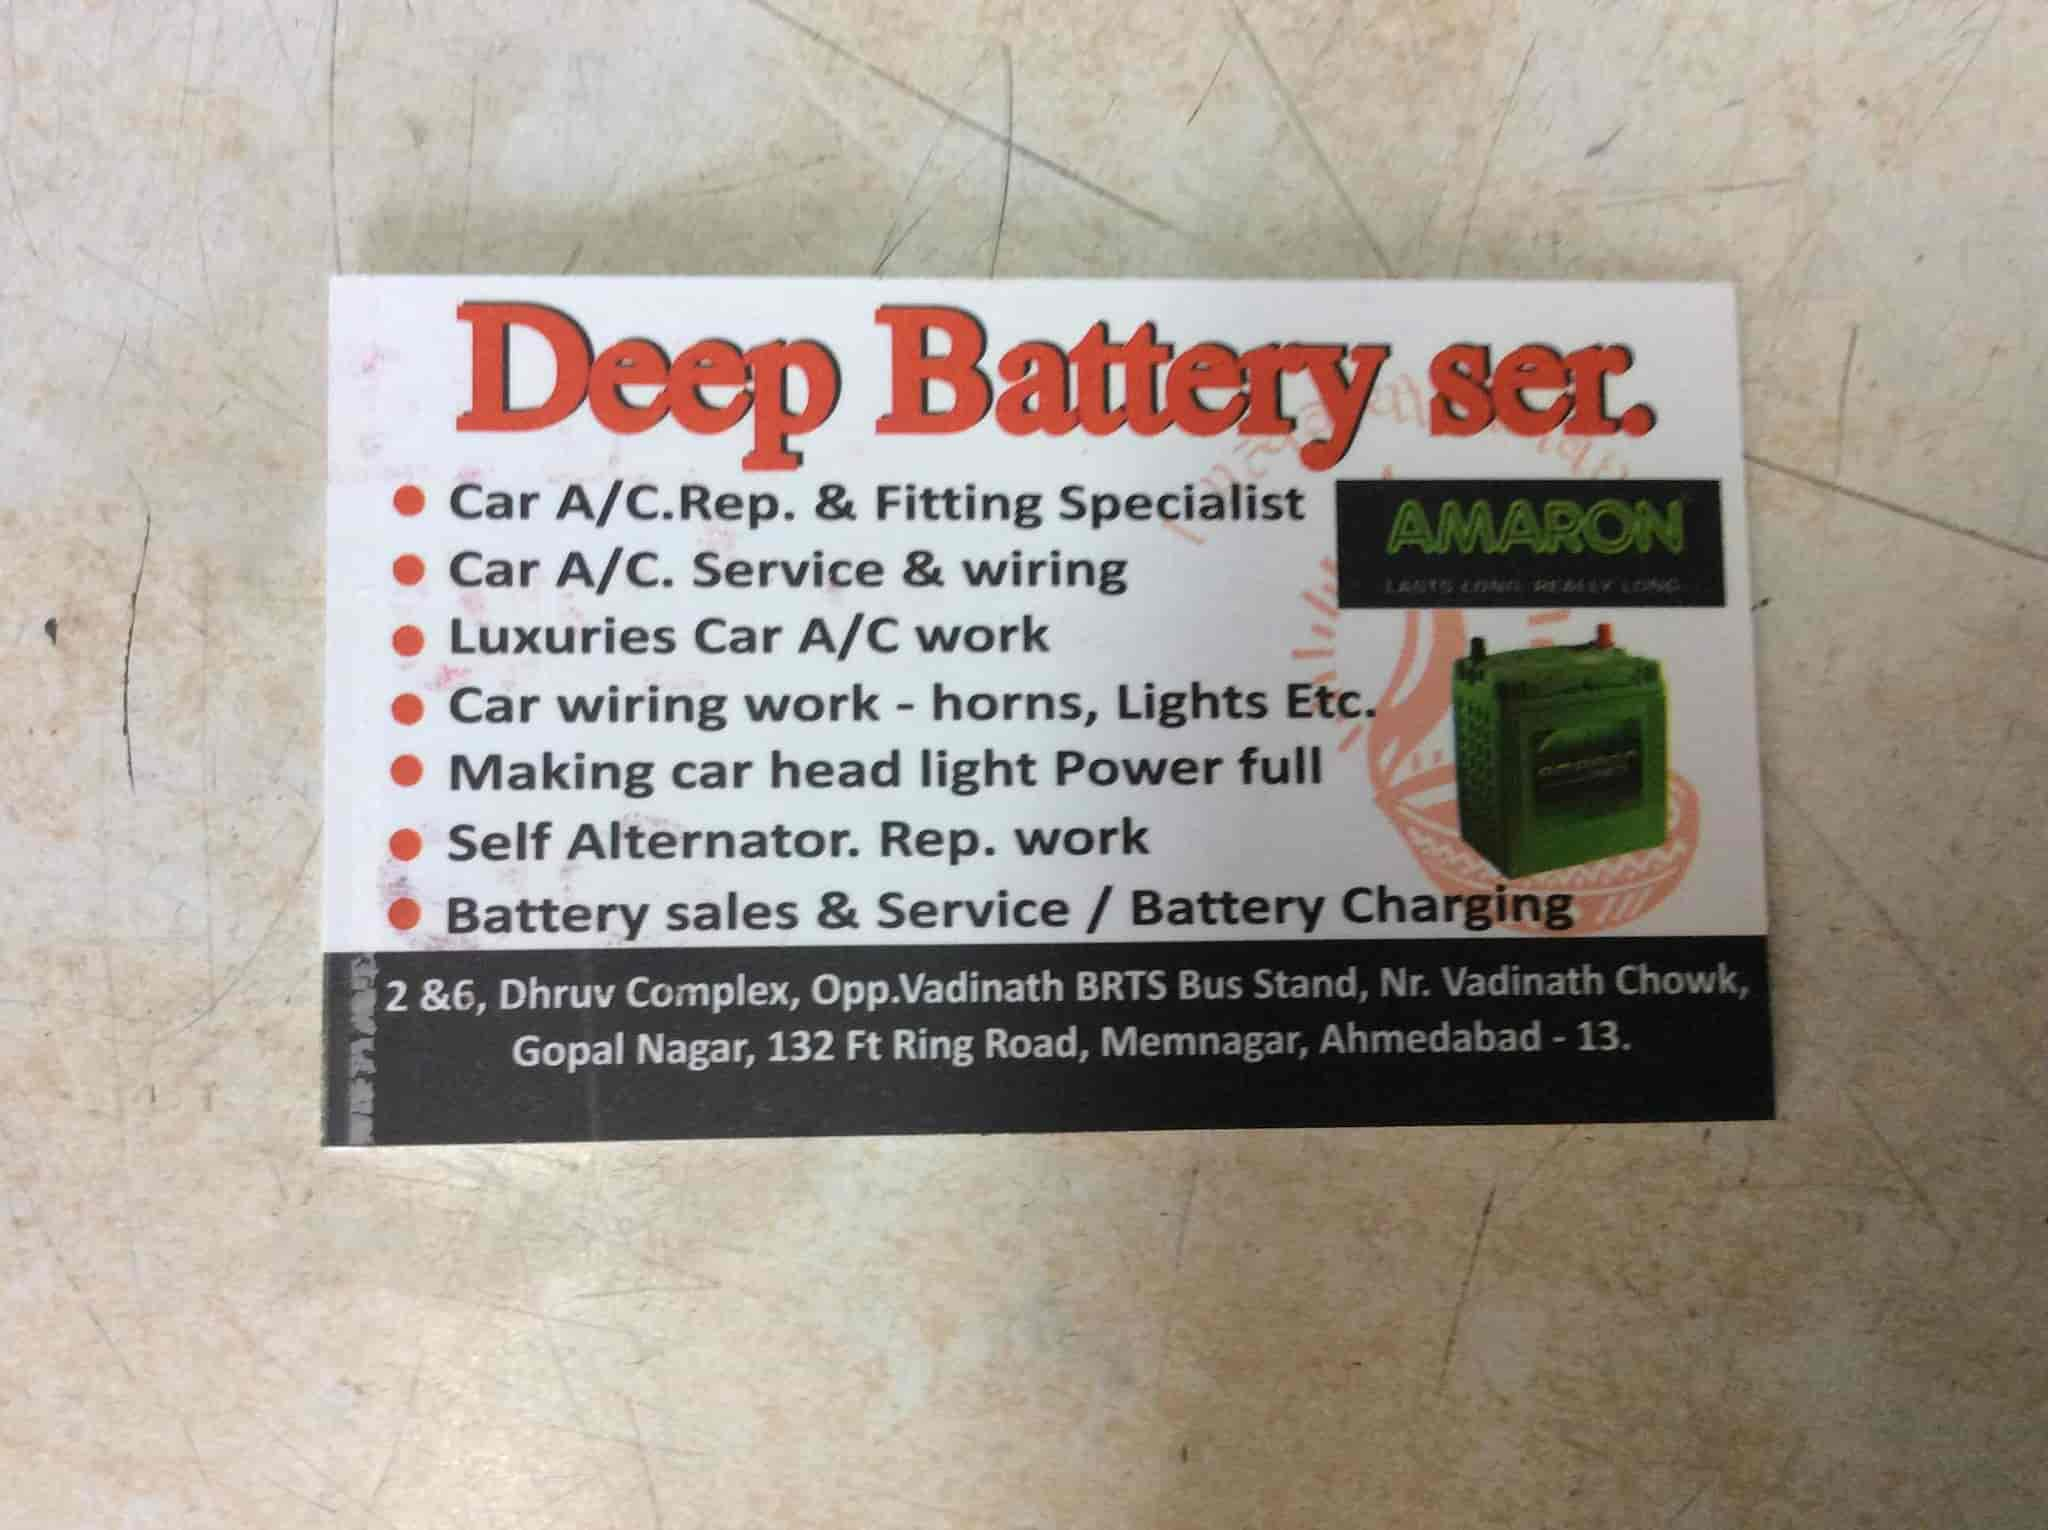 Deep Auto Electric And Car Ac Works Memnagar Wiring Battery Dealers In Ahmedabad Justdial